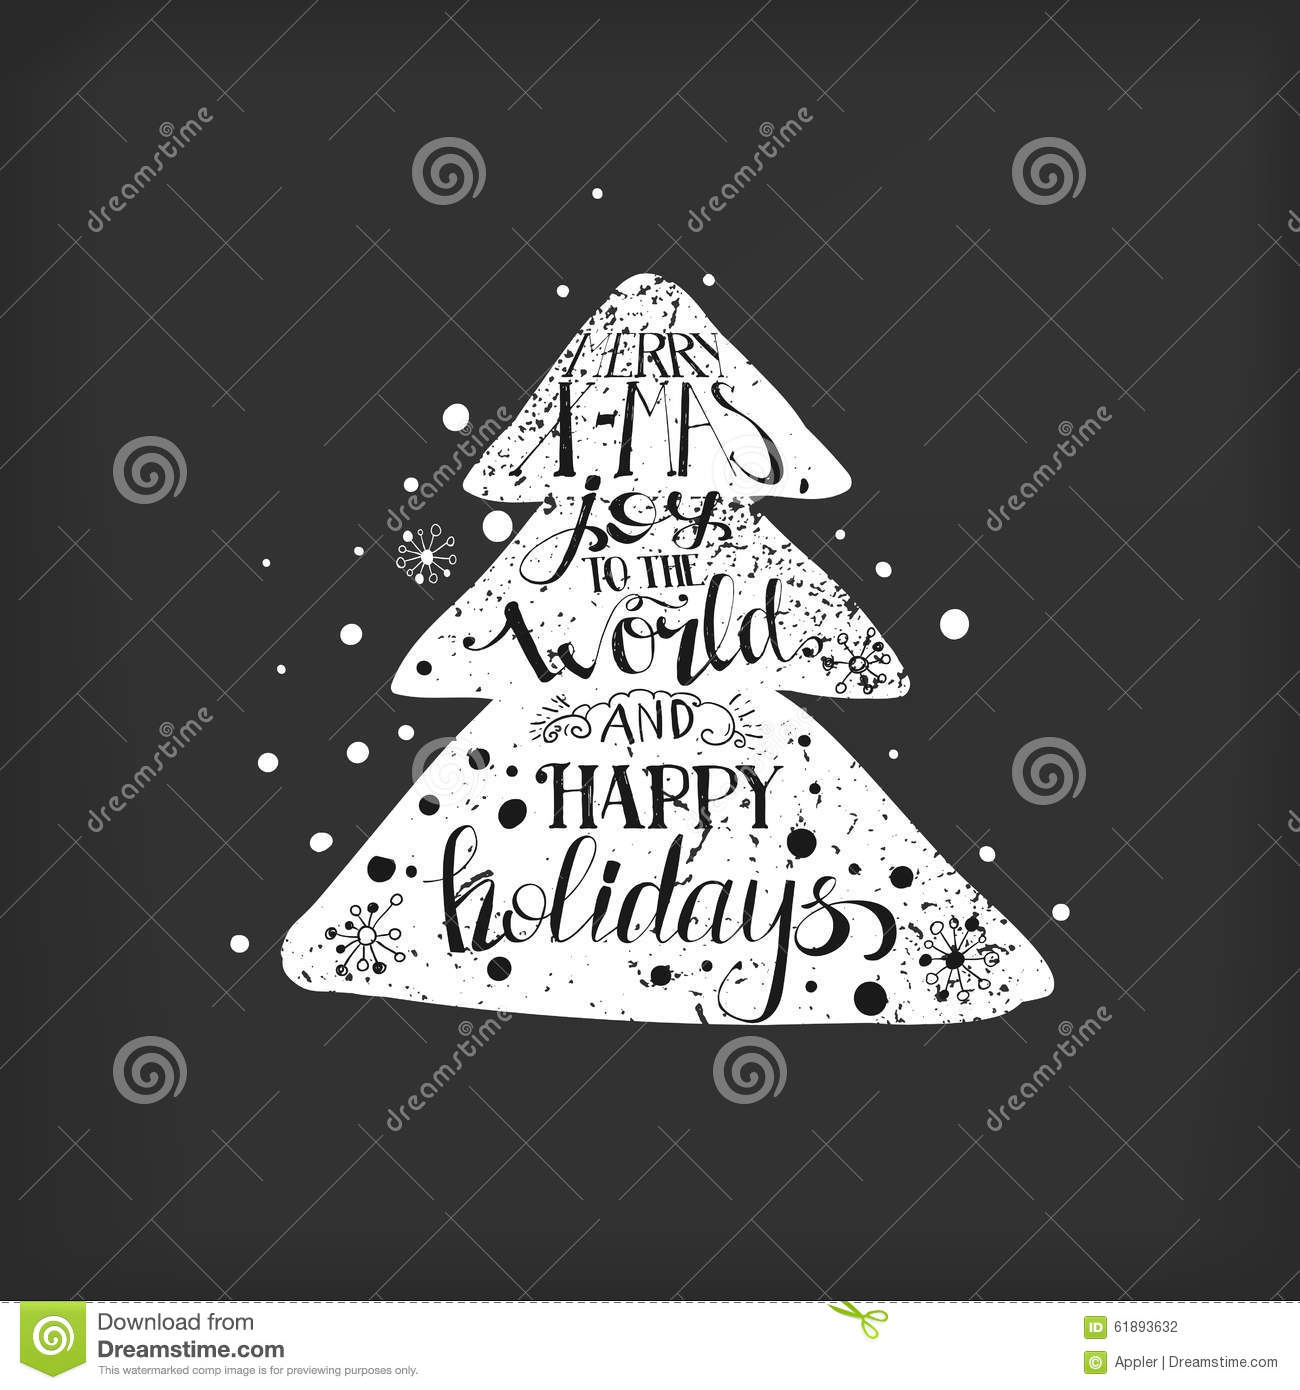 Merry Xmas Quote In A Christmas Tree Stock Vector   Illustration Of Print,  Card: 61893632